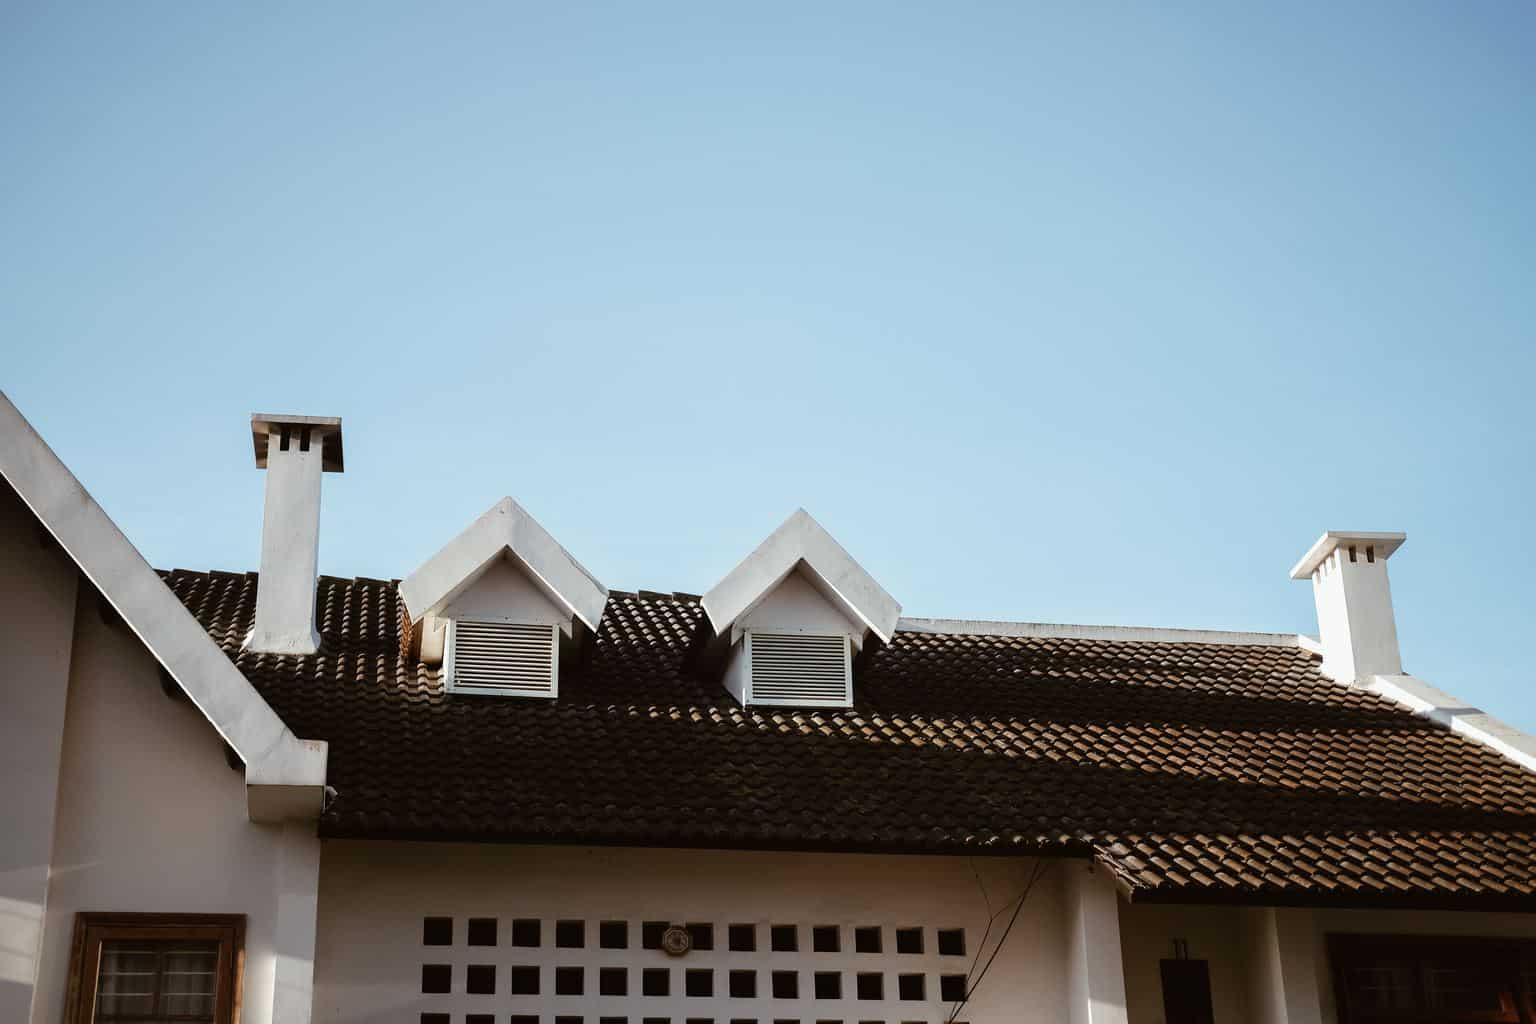 4 signs that may point to needing a new roof and how to address them before it causes damage